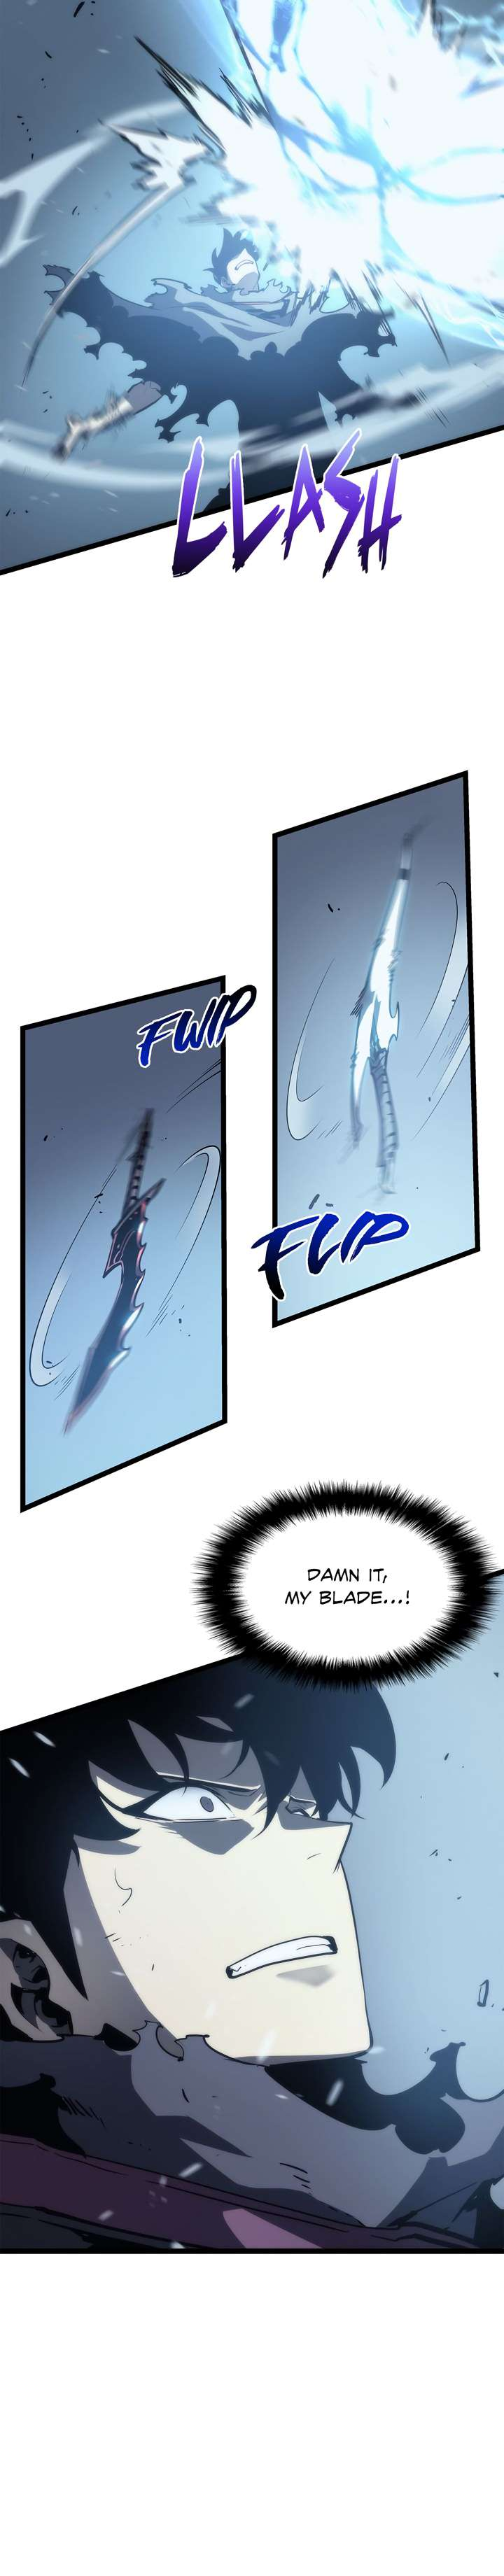 Solo Leveling Chapter 87 Page 24